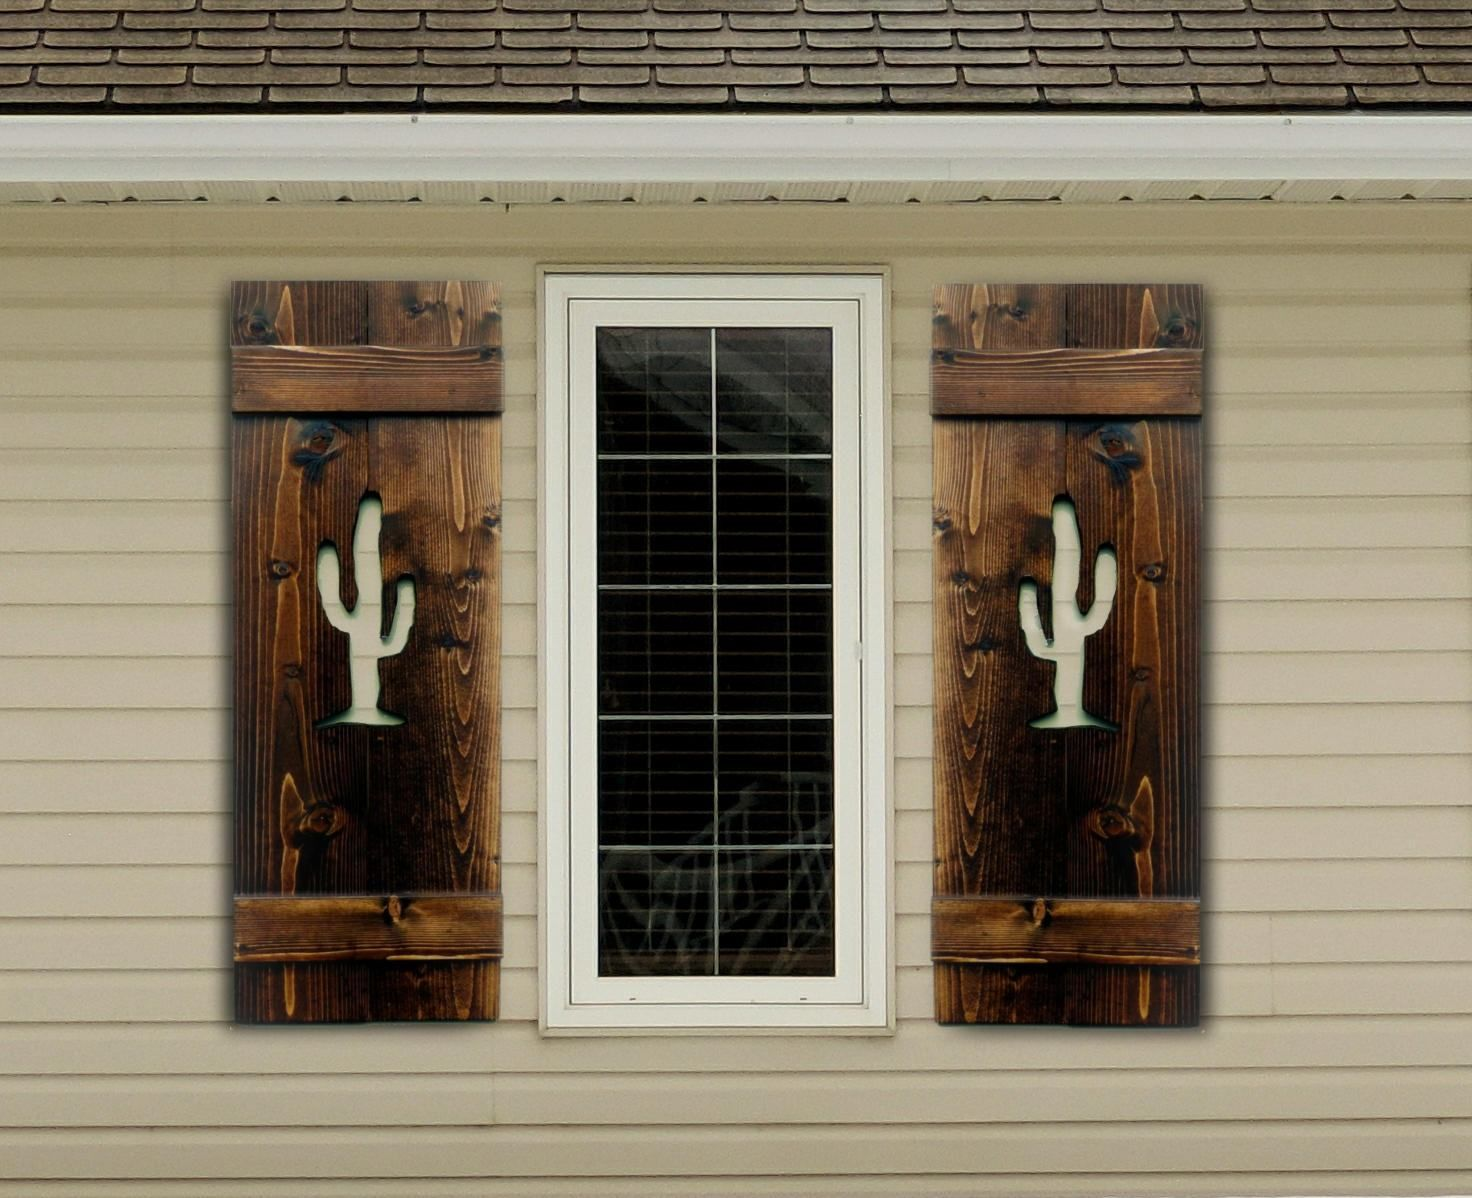 Wood Shutters, Interior Shutters, Exterior Shutters, Southwestern Decor,  Window Shutters, Decorative Shutters, Saloon Doors, Cafe Doors